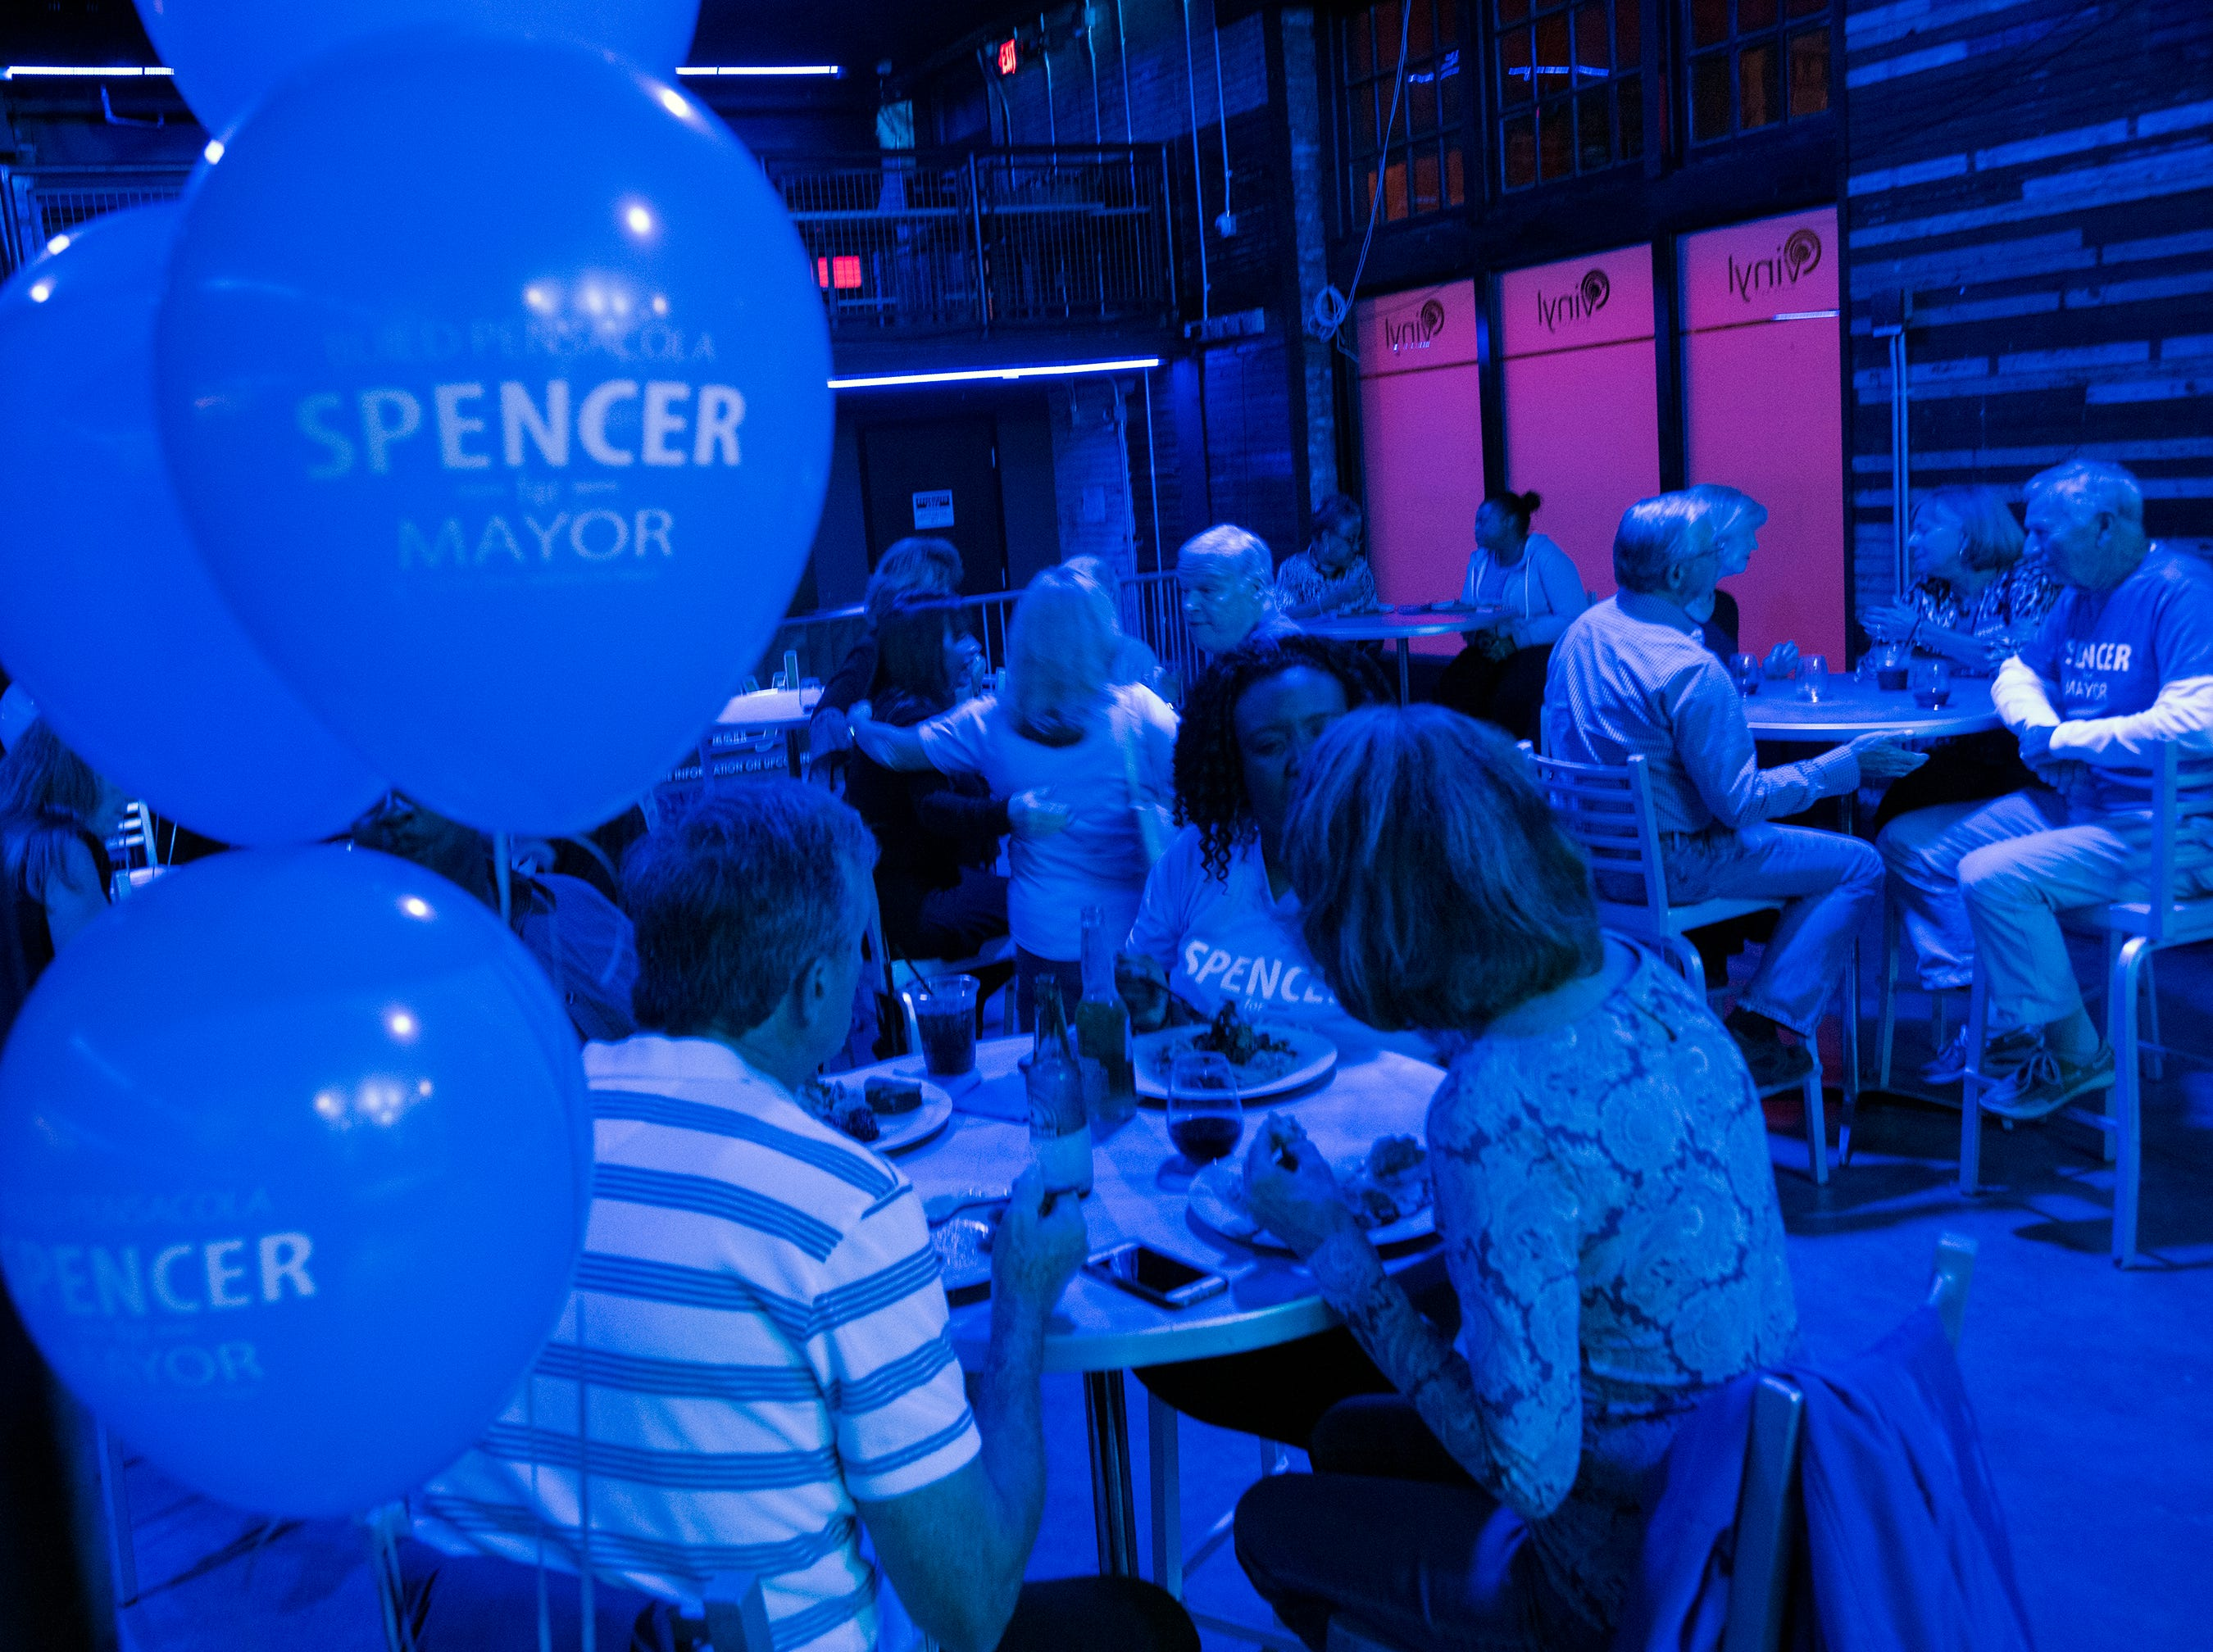 Supporters and volunteers for the Brian Spencer for Mayor campaign gather at Vinyl in downtown Pensacola to watch the election results come in on Tuesday night, Nov. 6, 2018. Spencer's opponent, Grover Robinson, won the election.